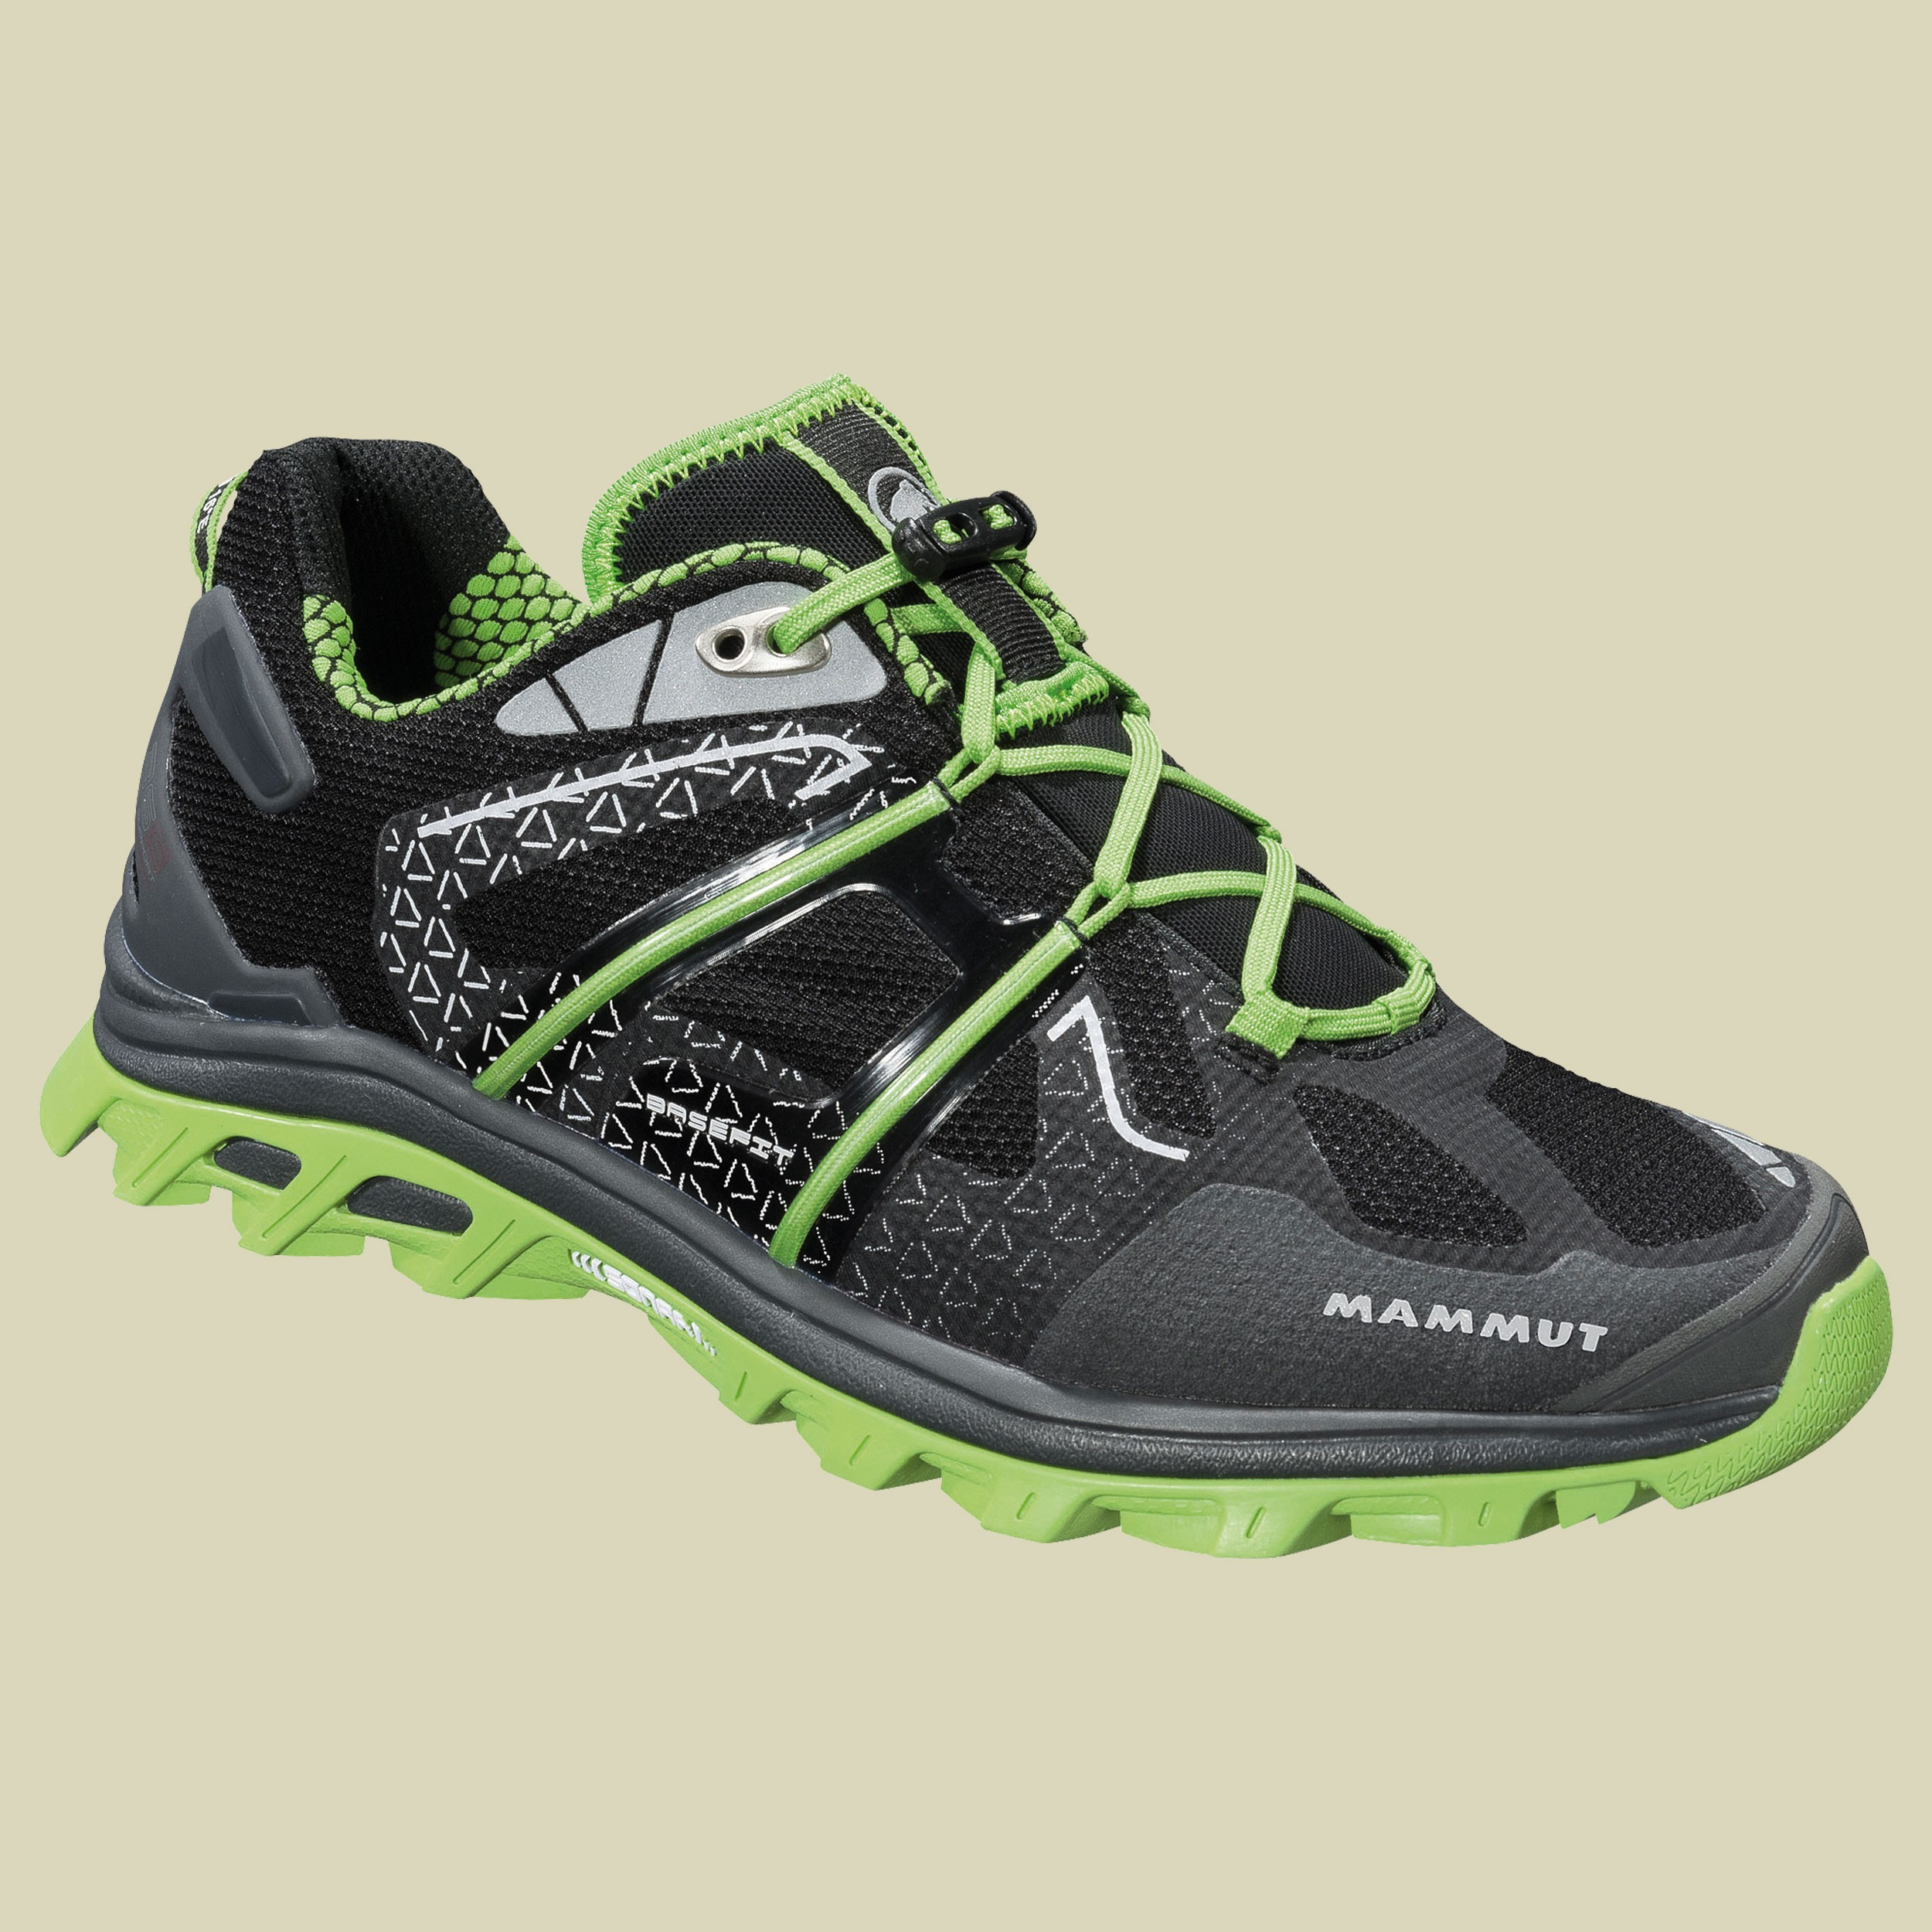 MTR 141 Base Low GTX Men